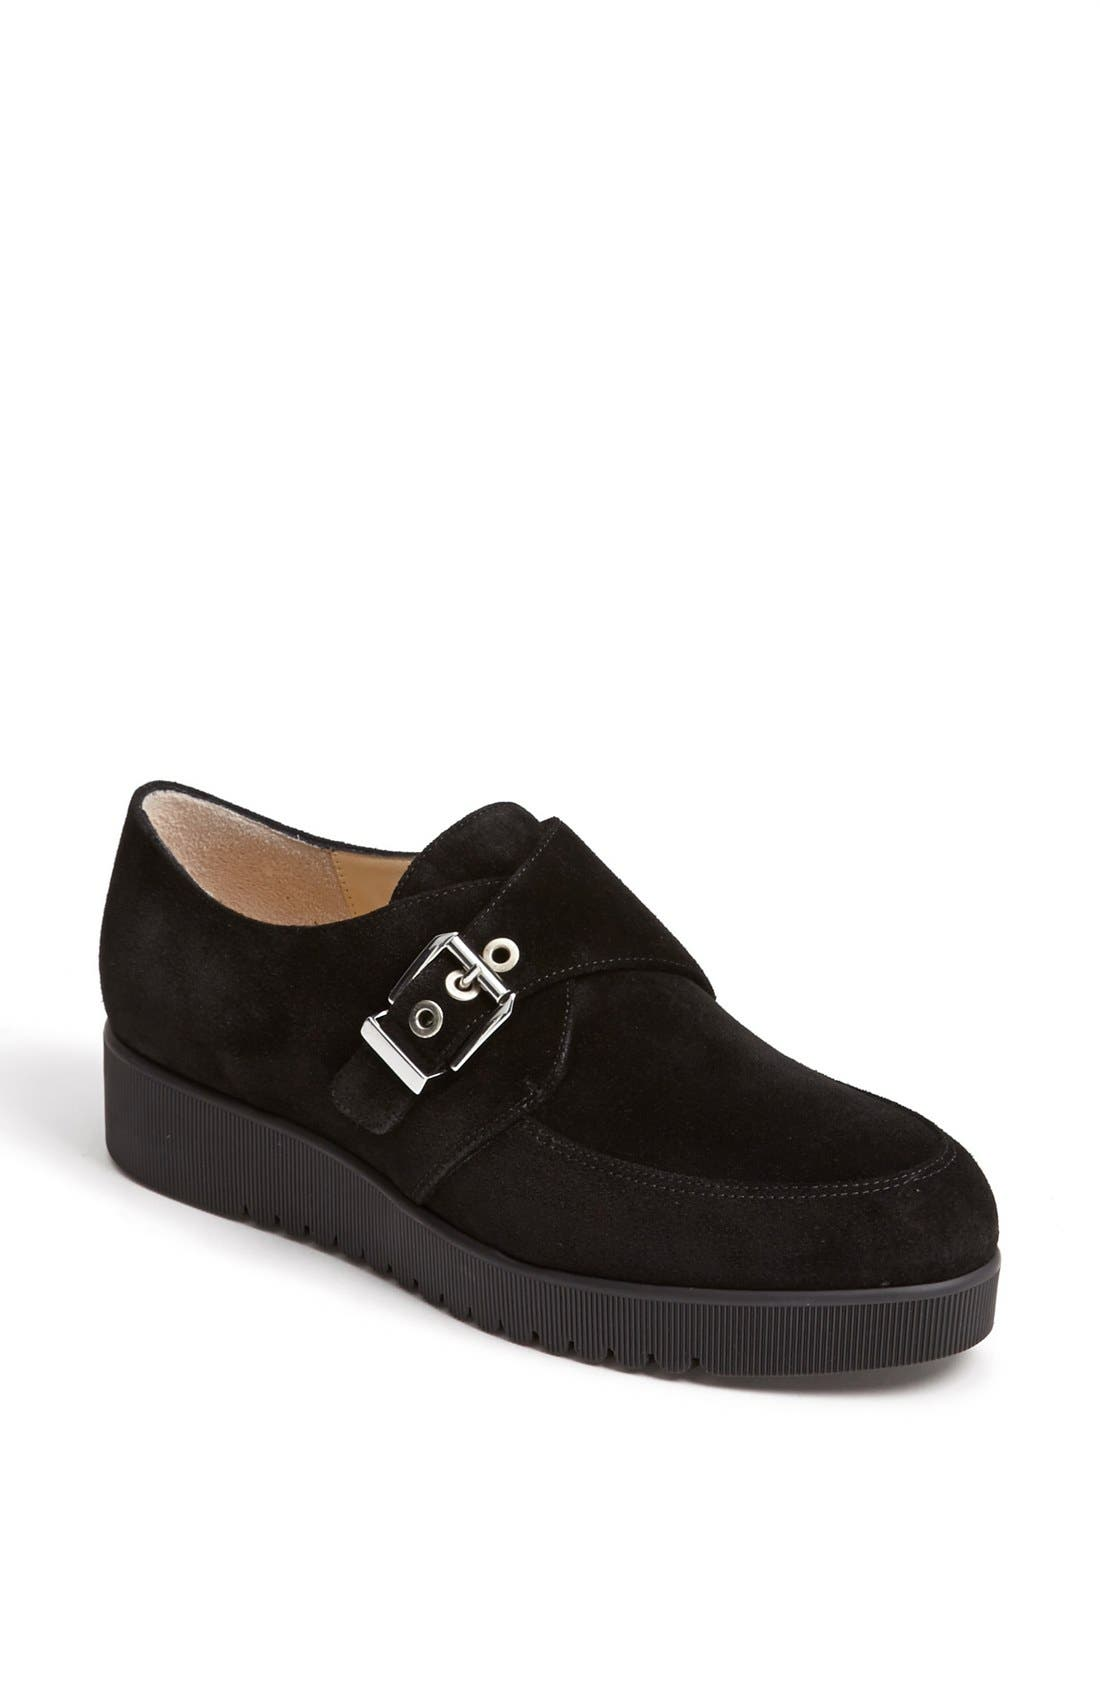 . 'Push' Loafer, Main, color, 001